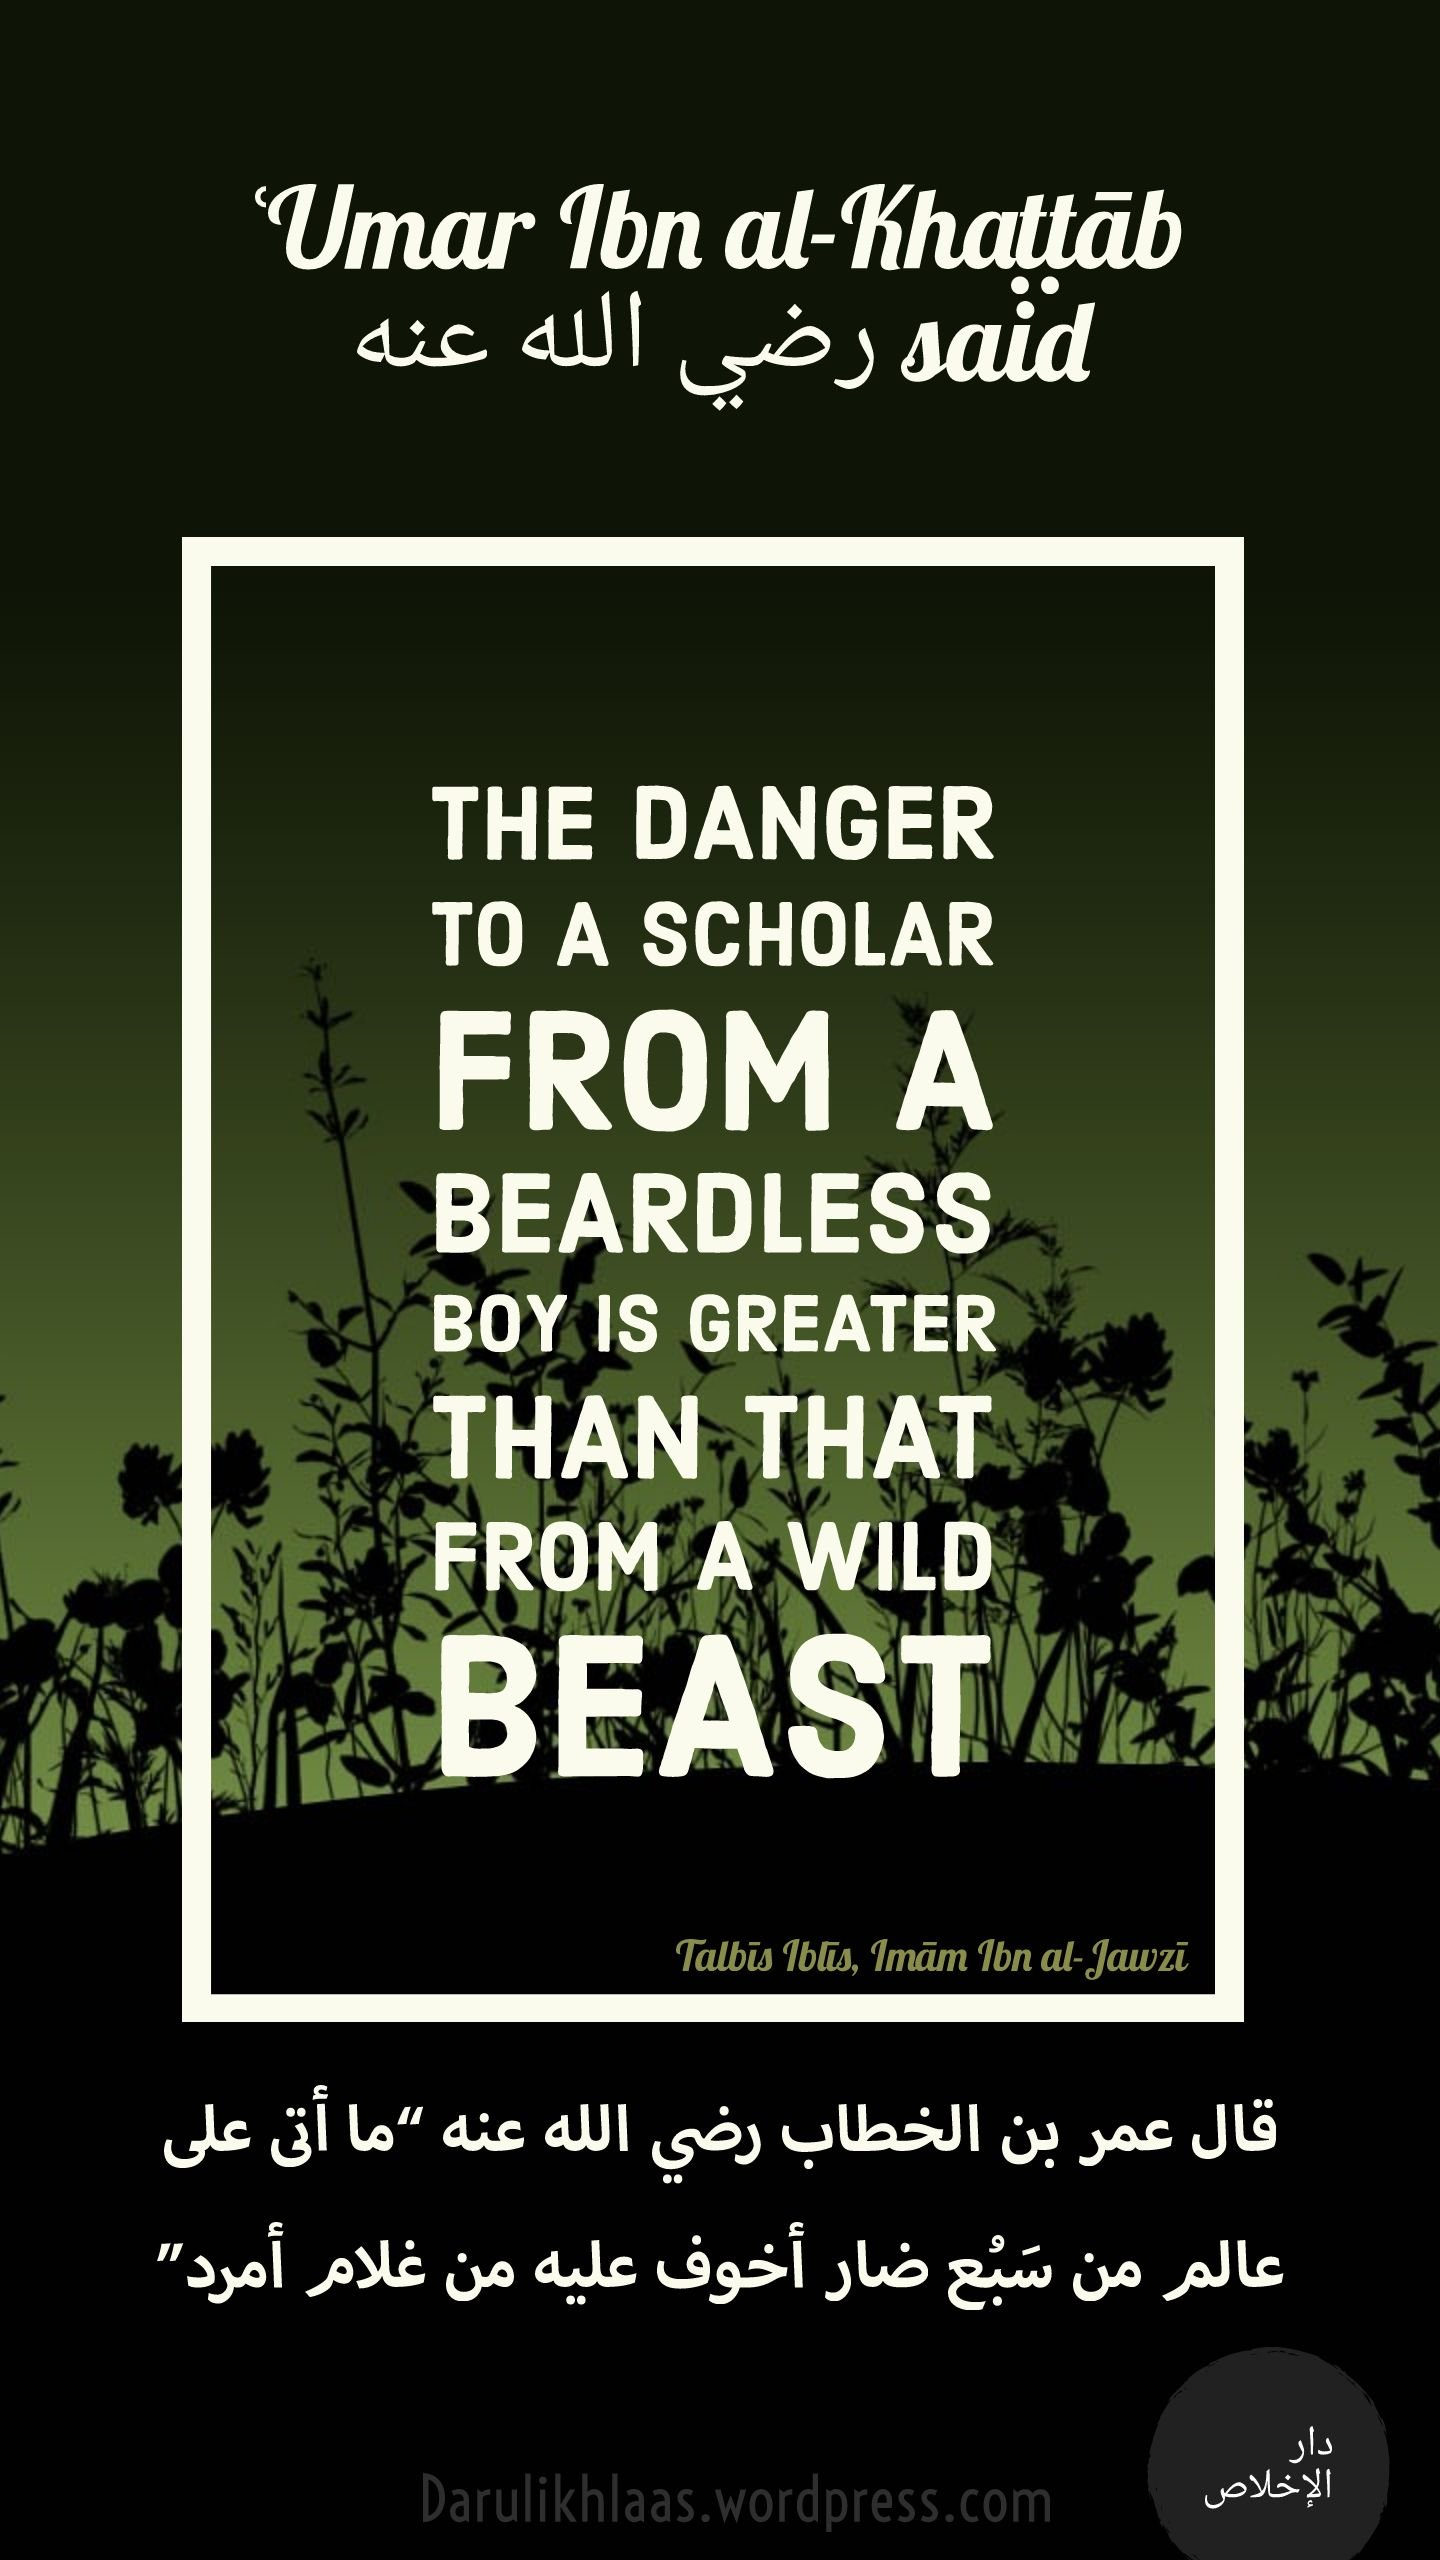 Danger of young beardless boys